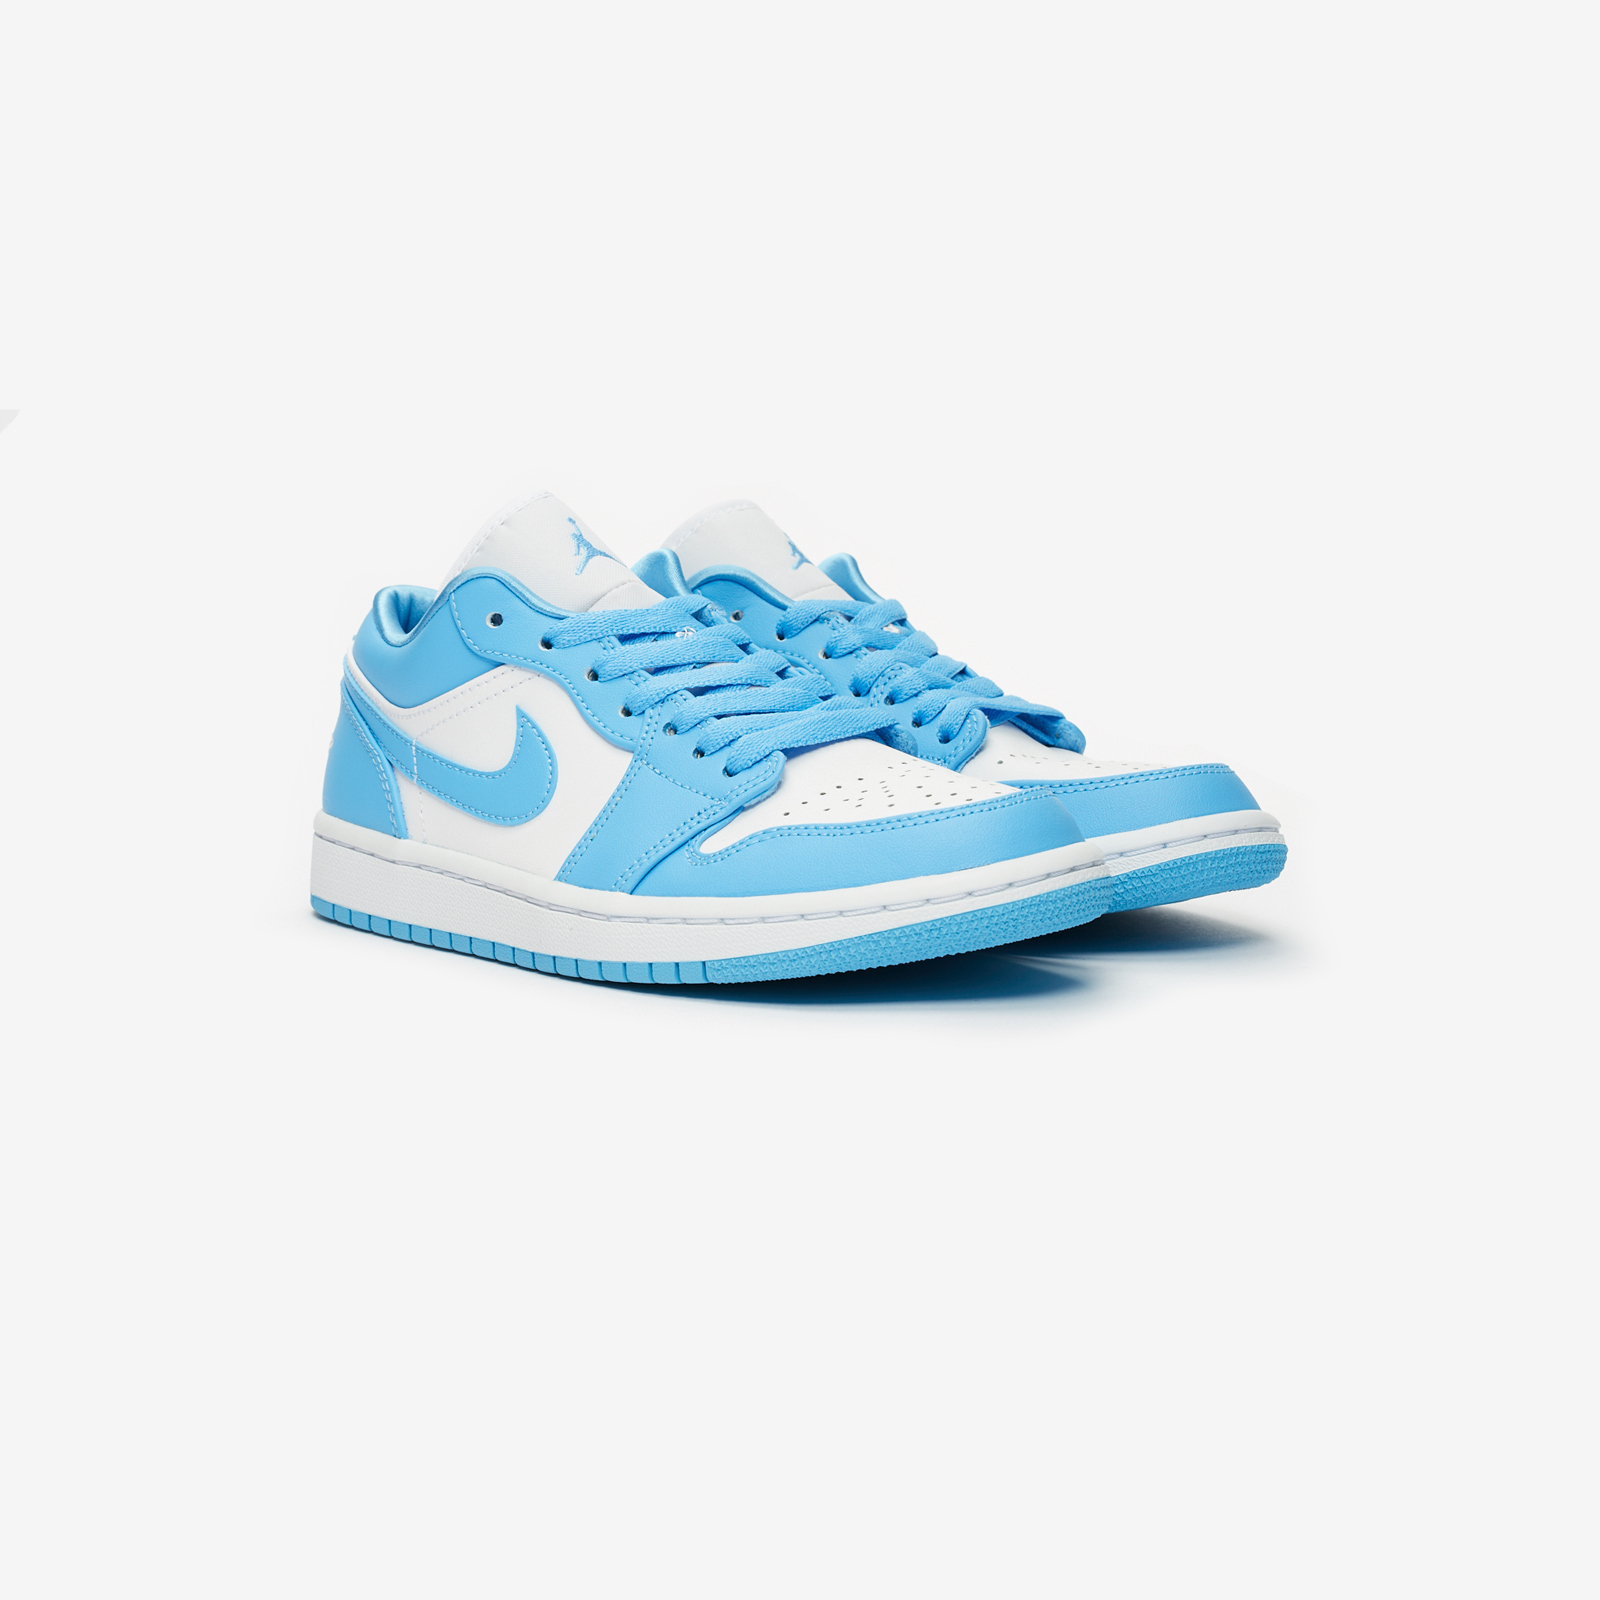 4813 1984 paperweight essay.php]1984 UpcomingRelease NIKE Air Griffey Max 1 FRESHWATER 2021 THE